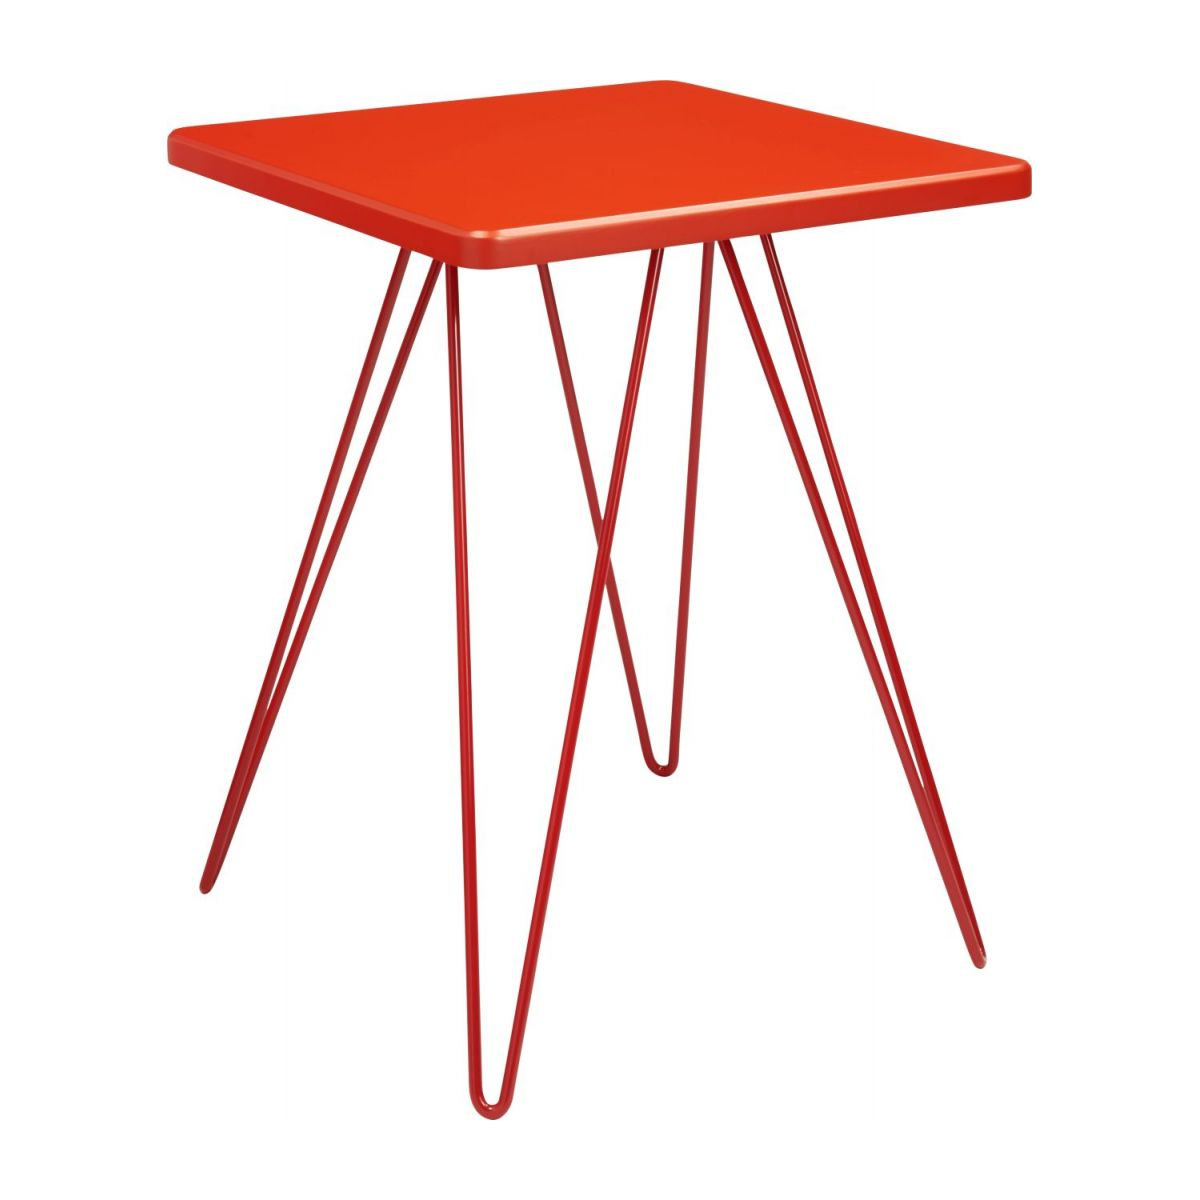 Table d'appoint rouge  n°1